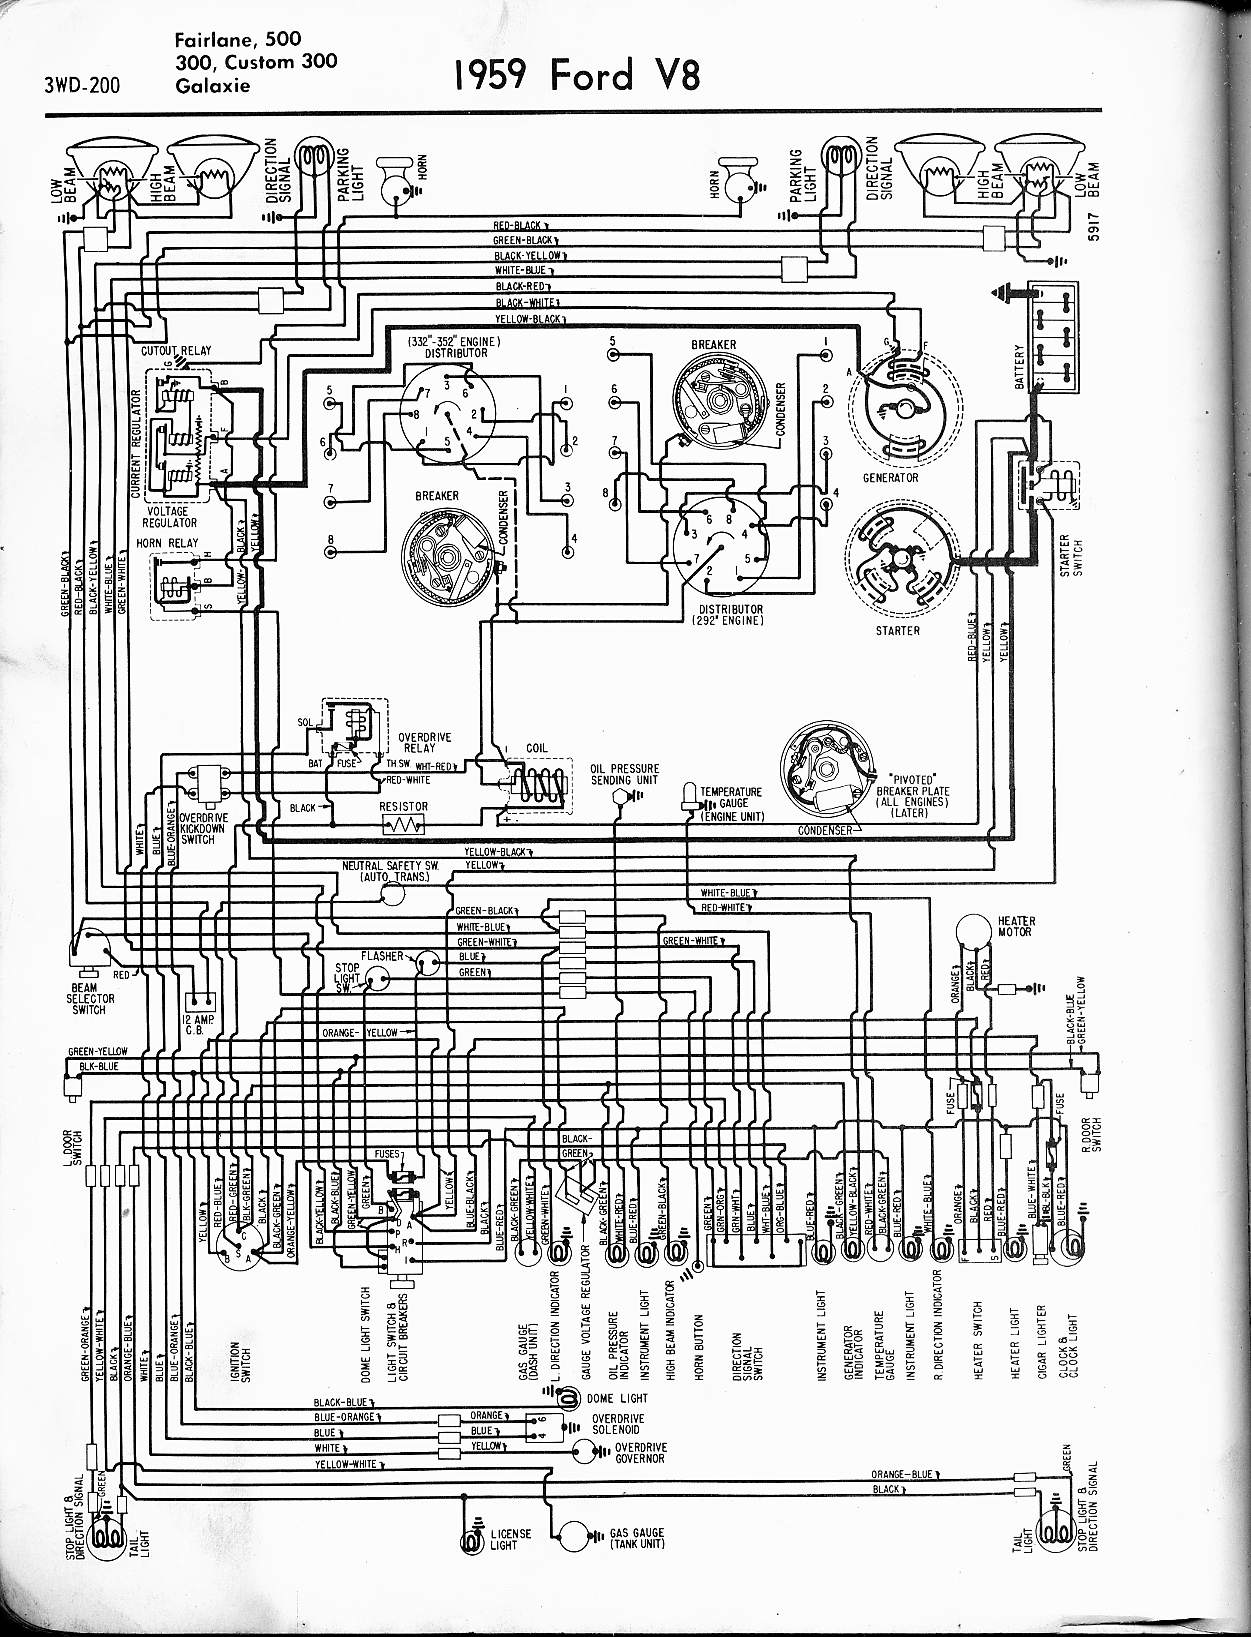 1959 ford f100 wiring schematic 1959 ford regulator wiring 57-65 ford wiring diagrams